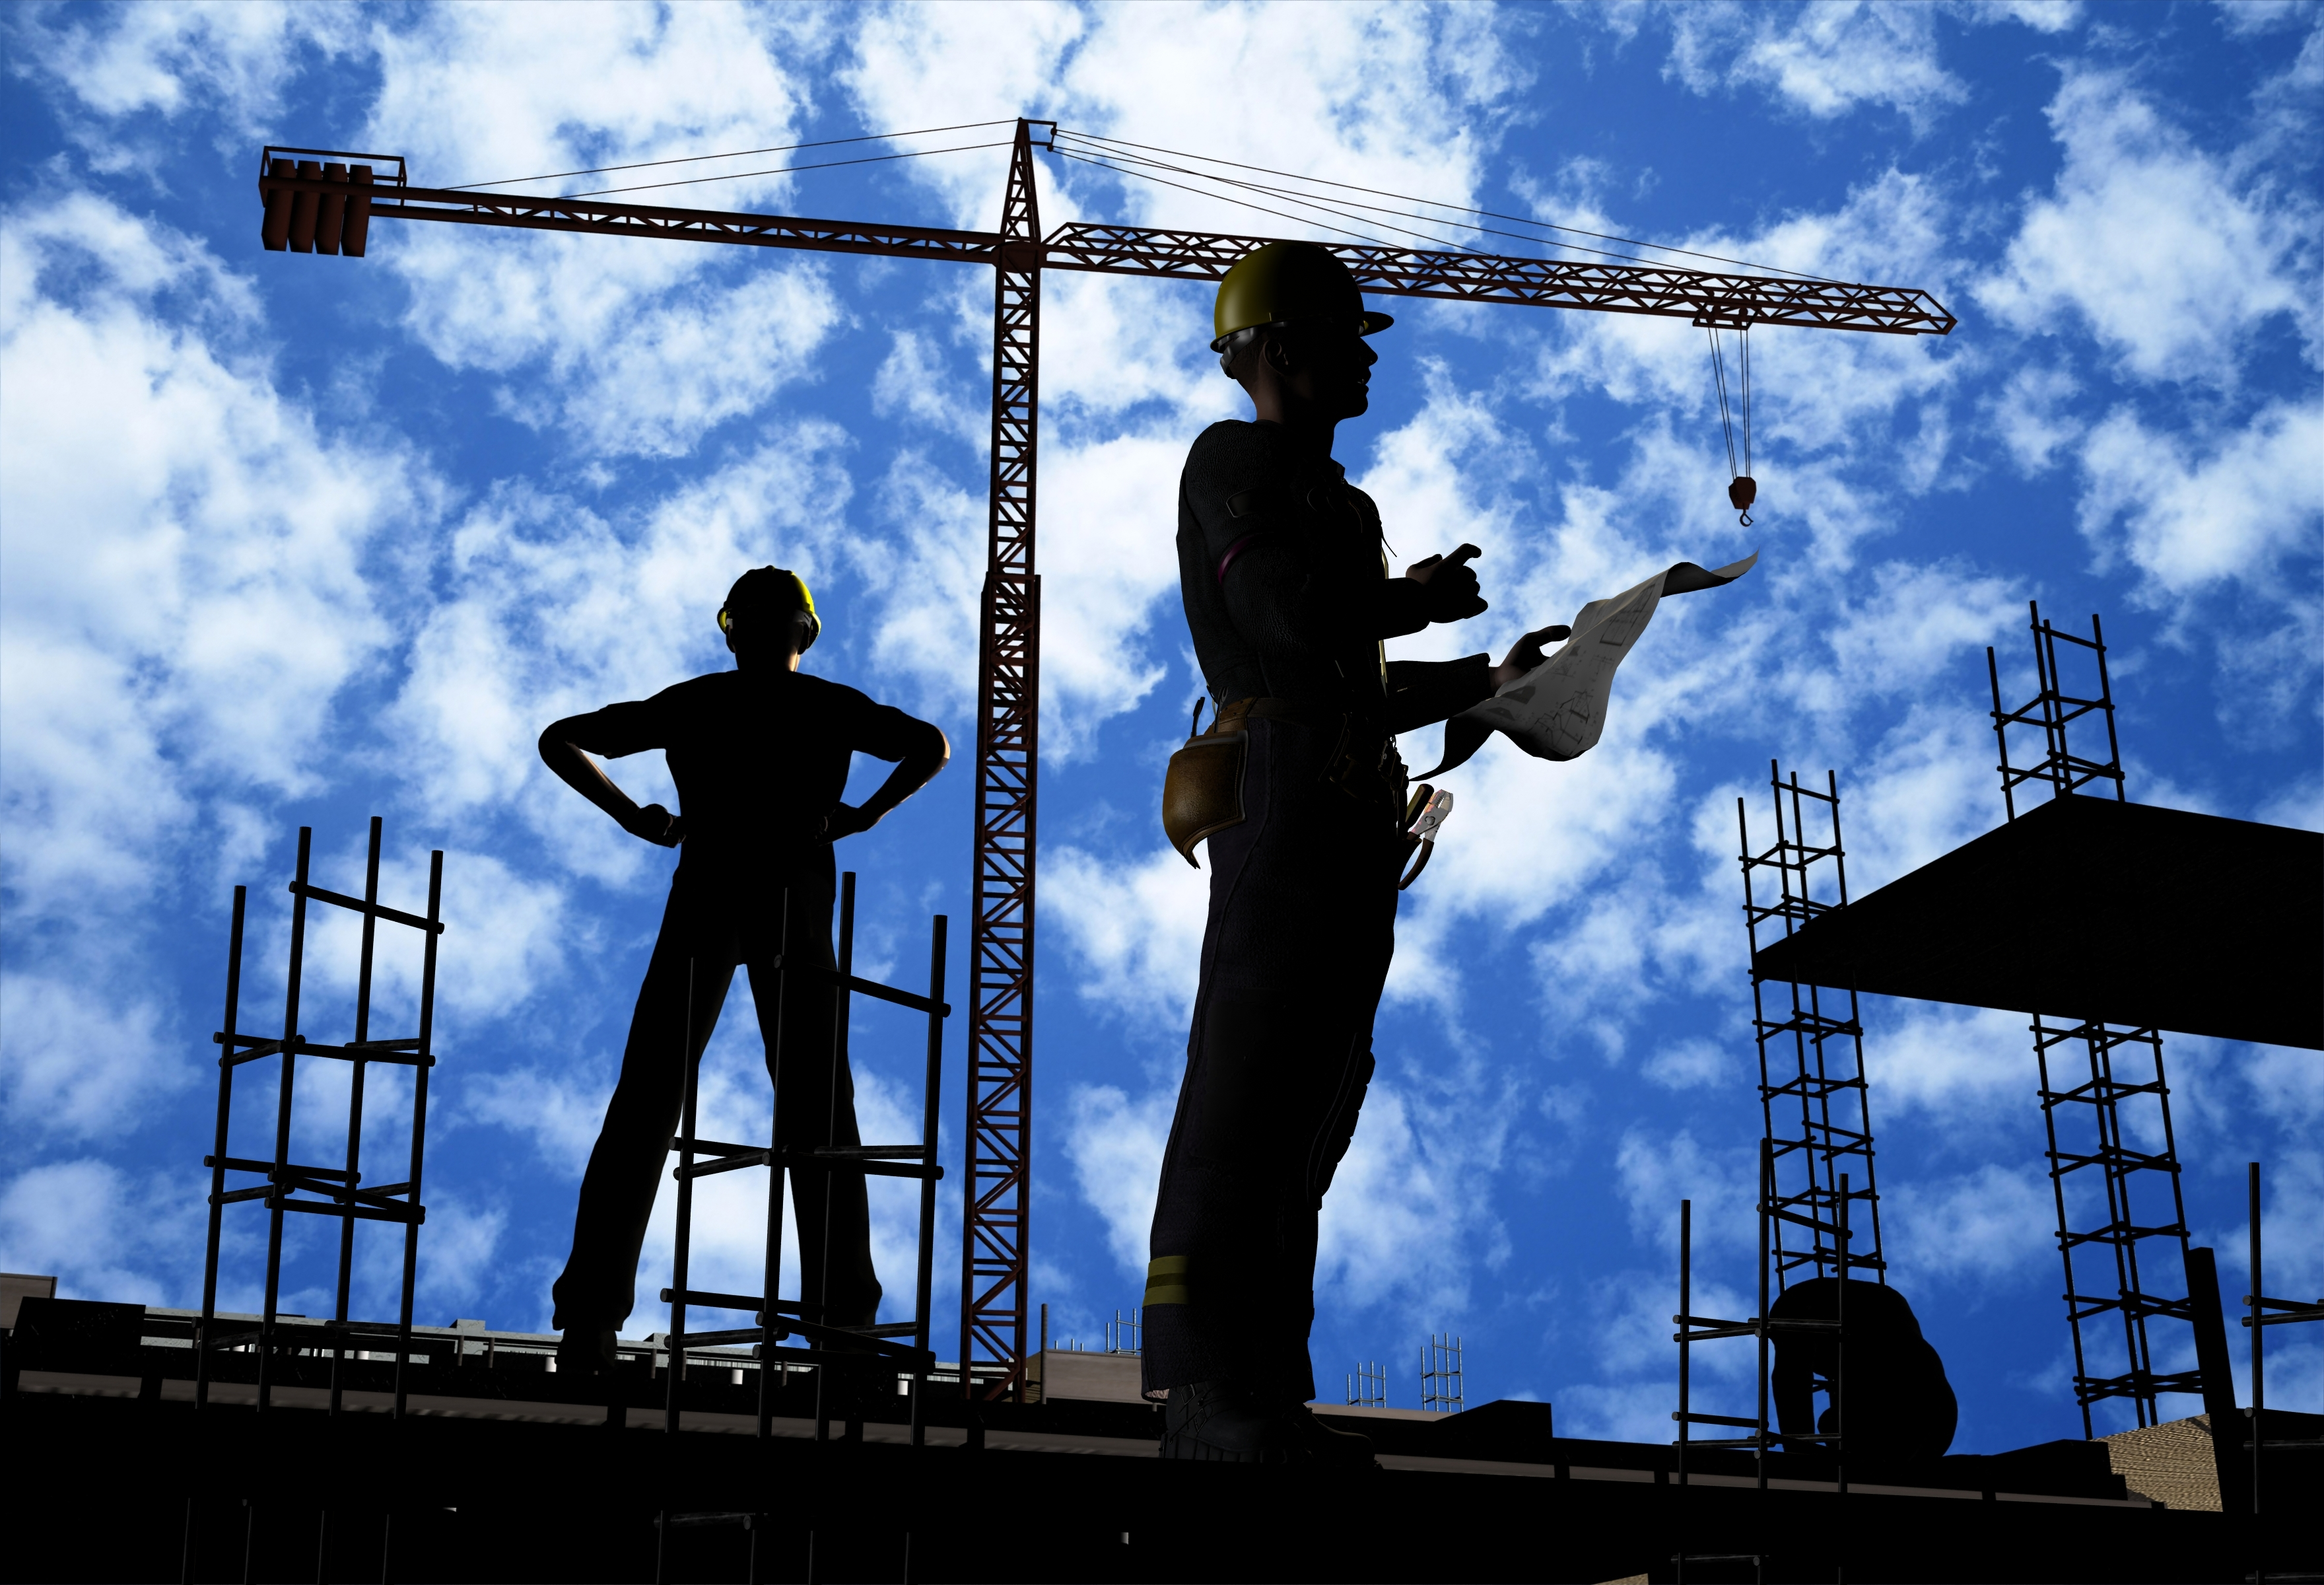 Construction_blue_shutterstock_66542929[1]